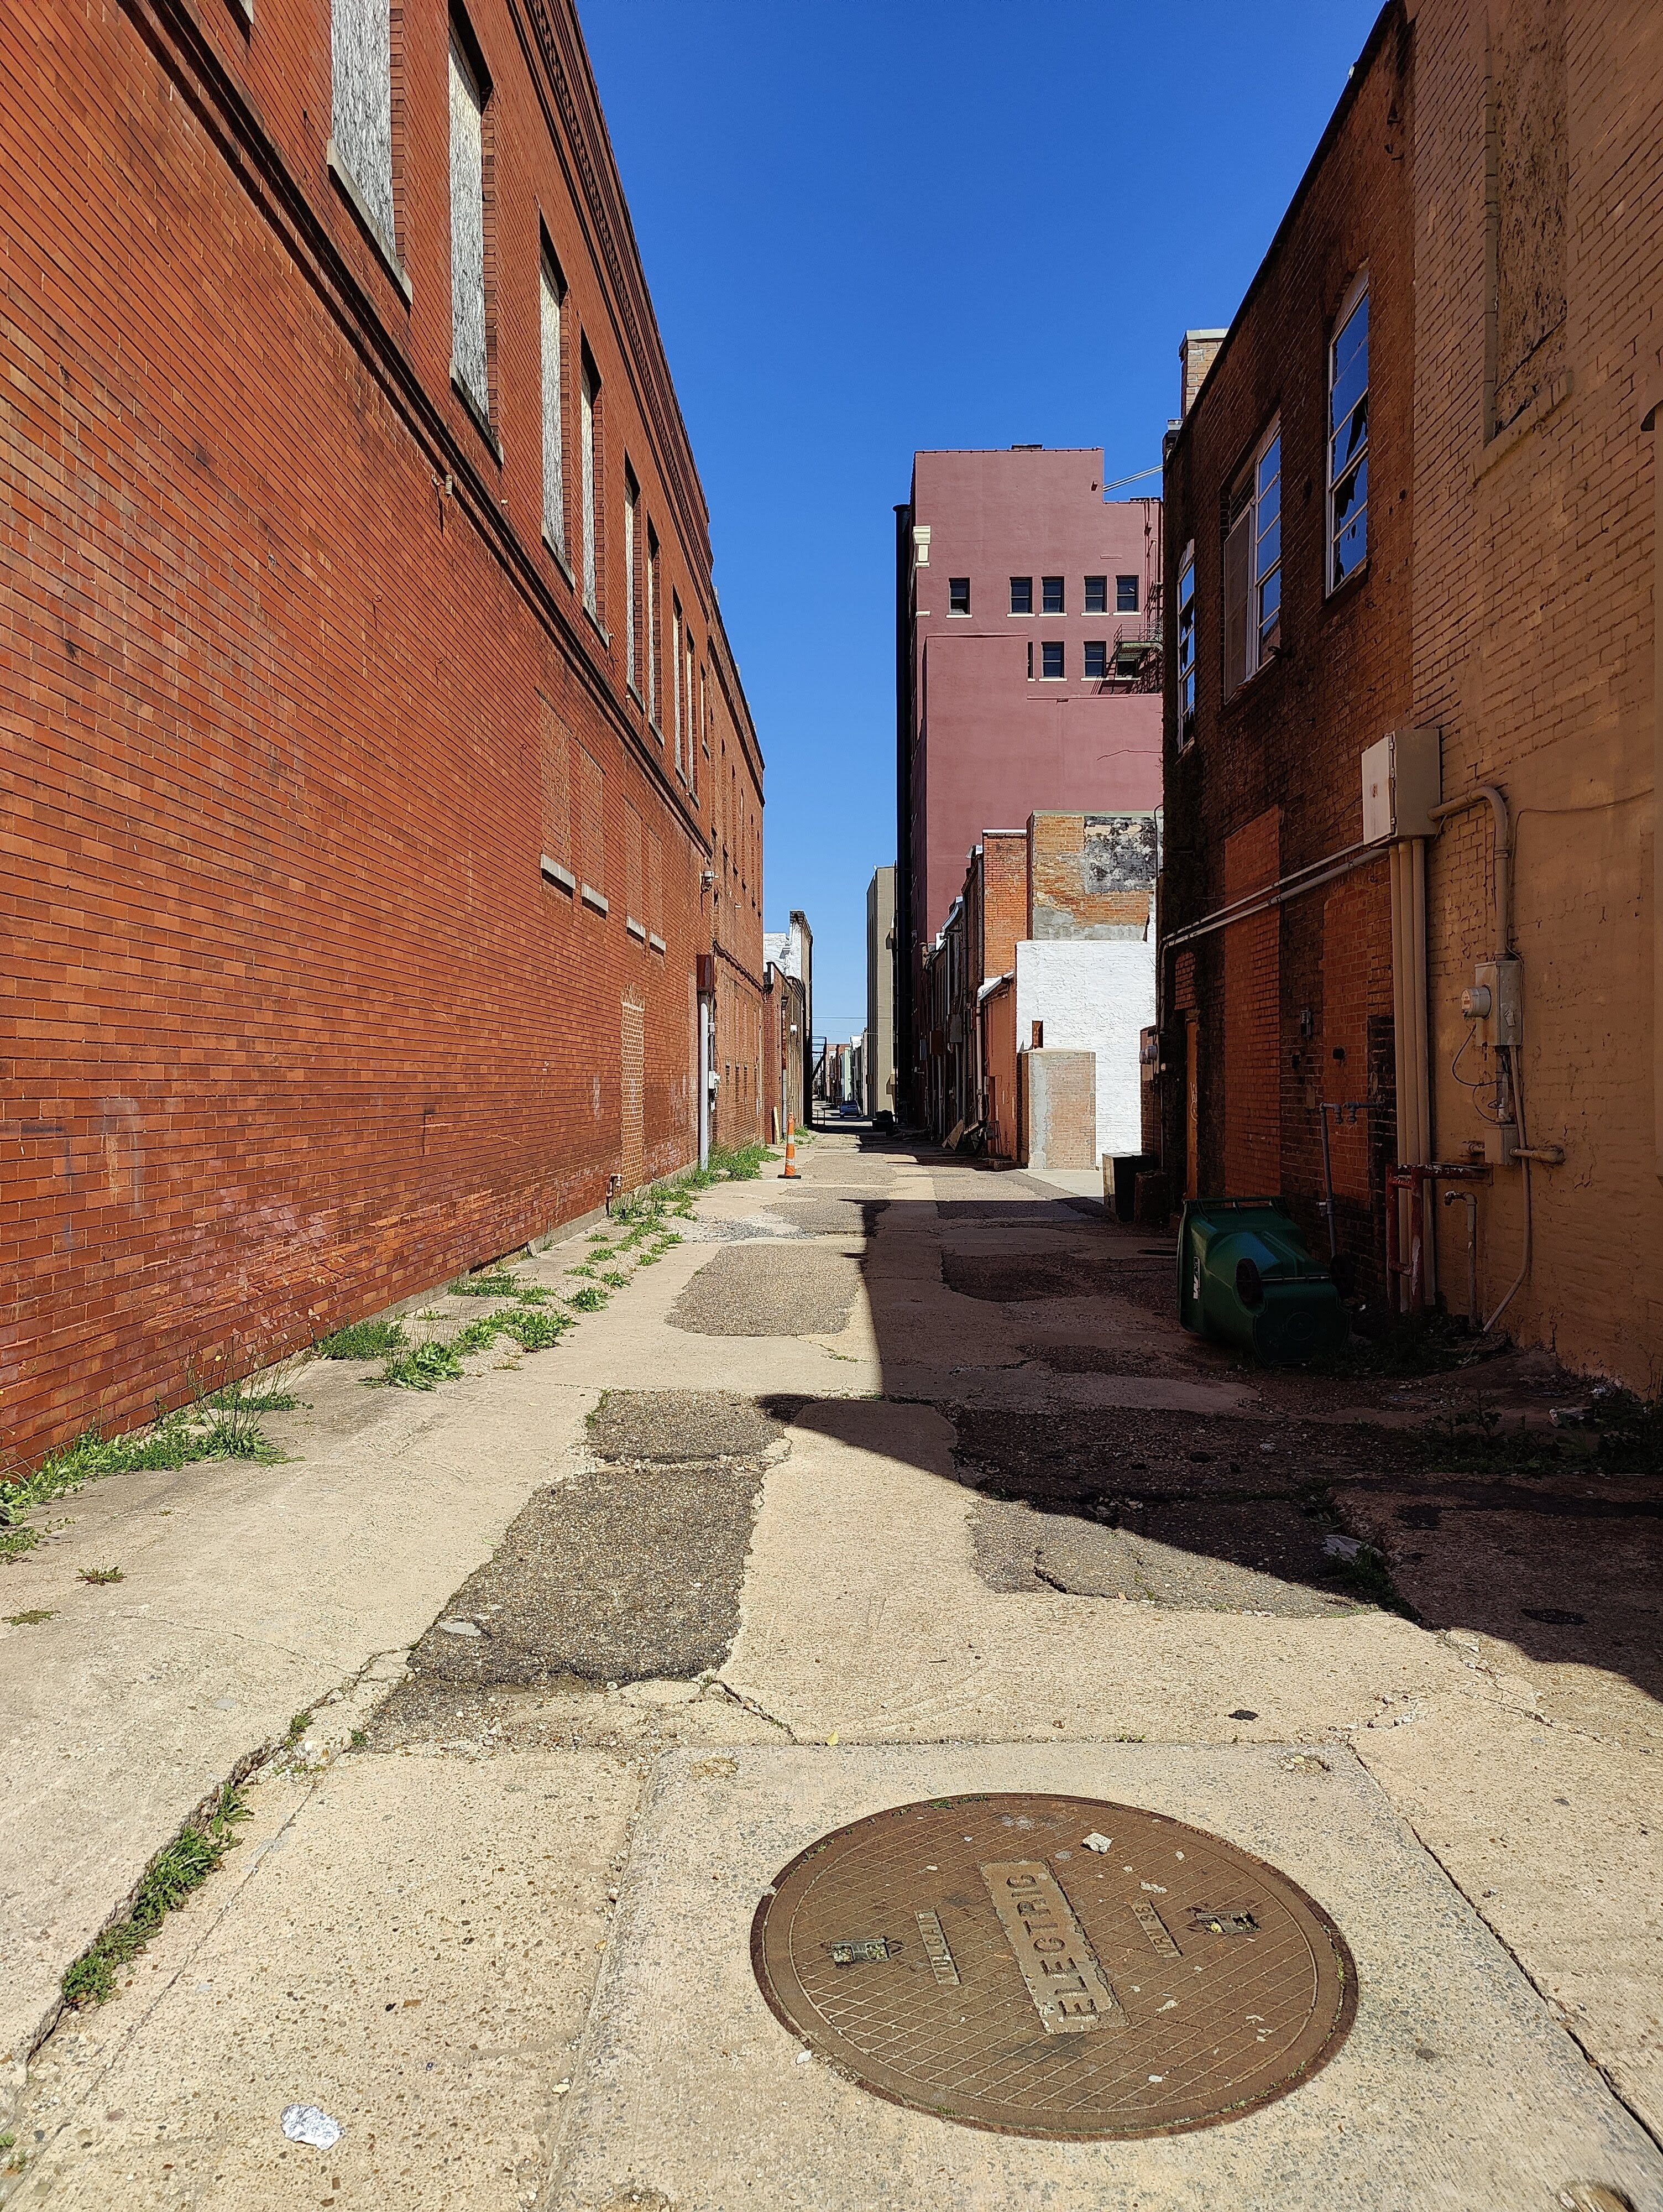 OnePlus 9 Pro Camera Sample: An alleyway shot with the main camera